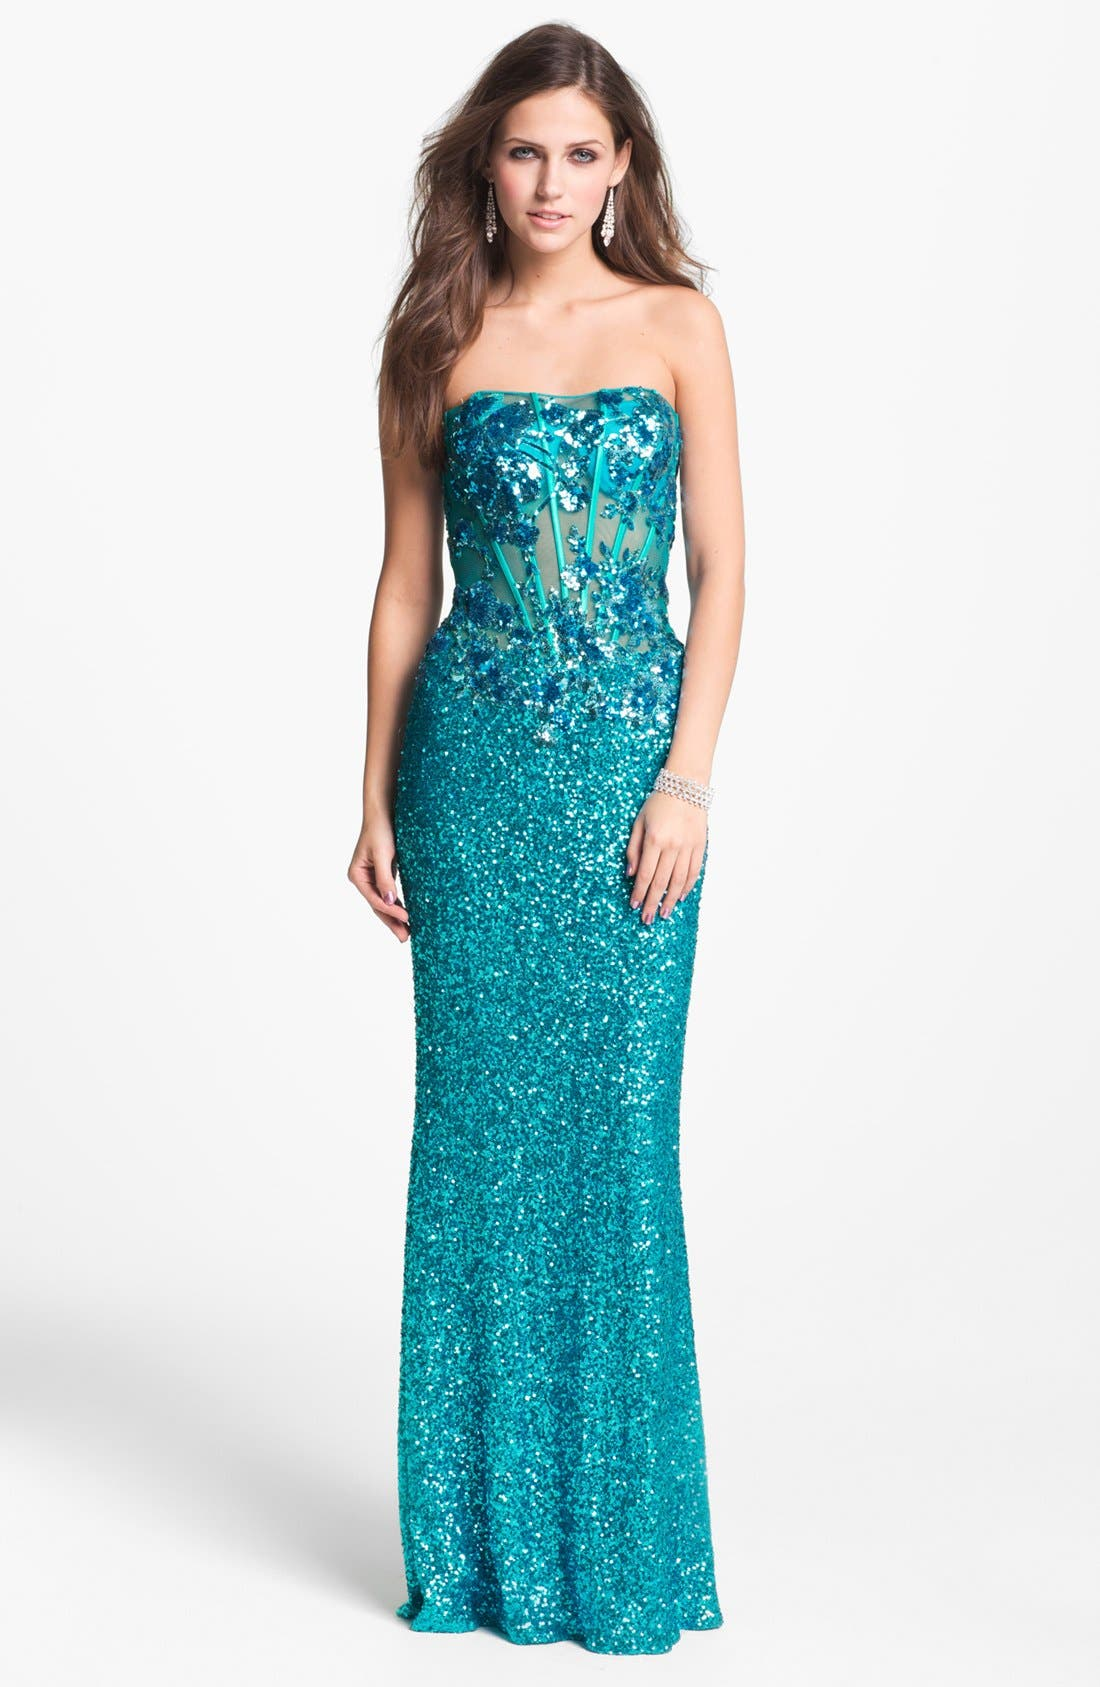 Alternate Image 1 Selected - Faviana Strapless Sequin Gown (Online Exclusive)